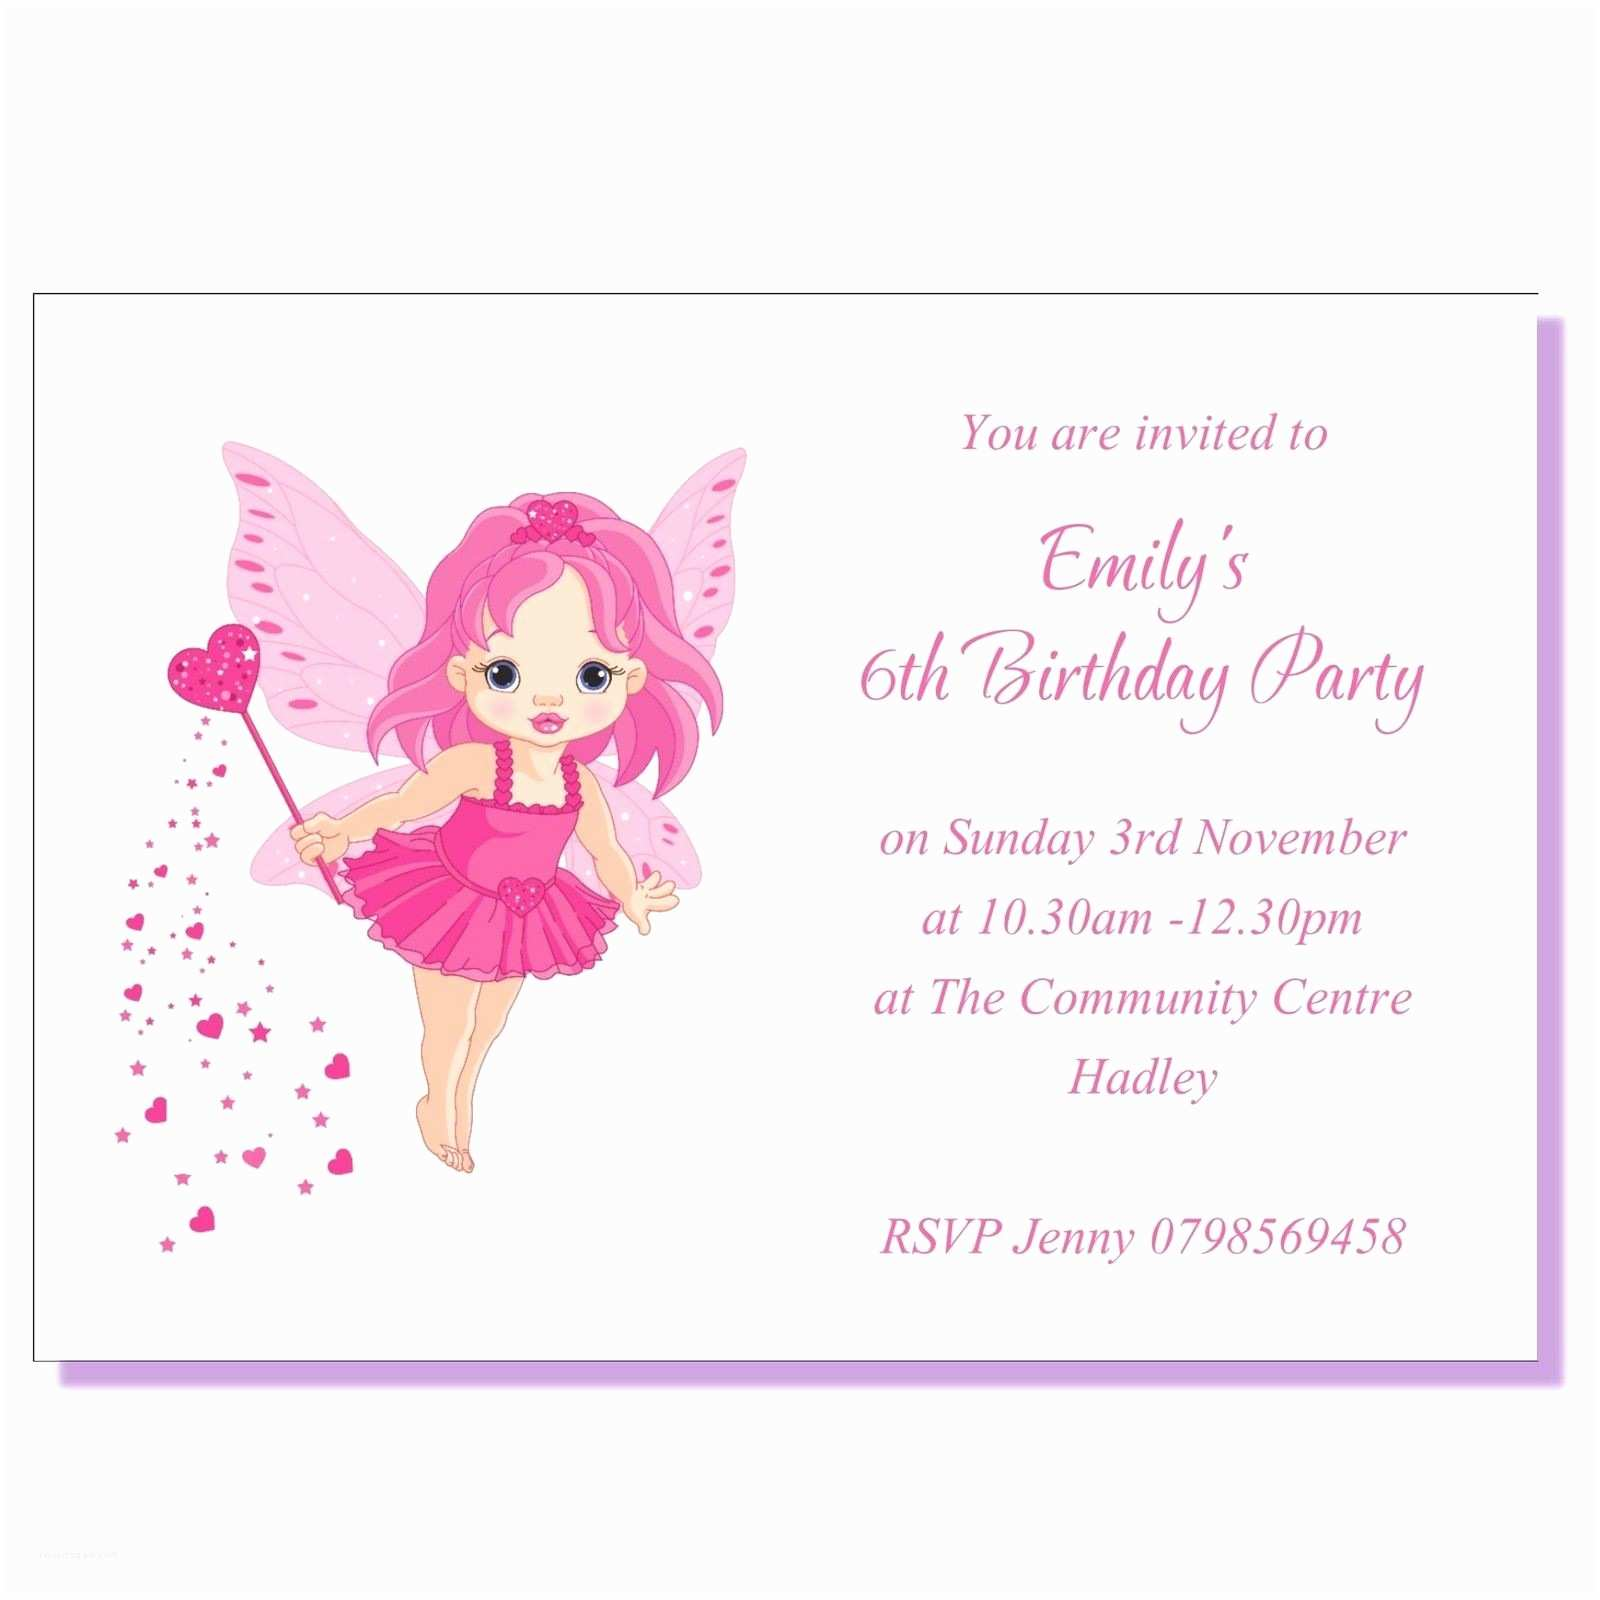 5th Birthday Invitation Wording For Gymnastics Party Best